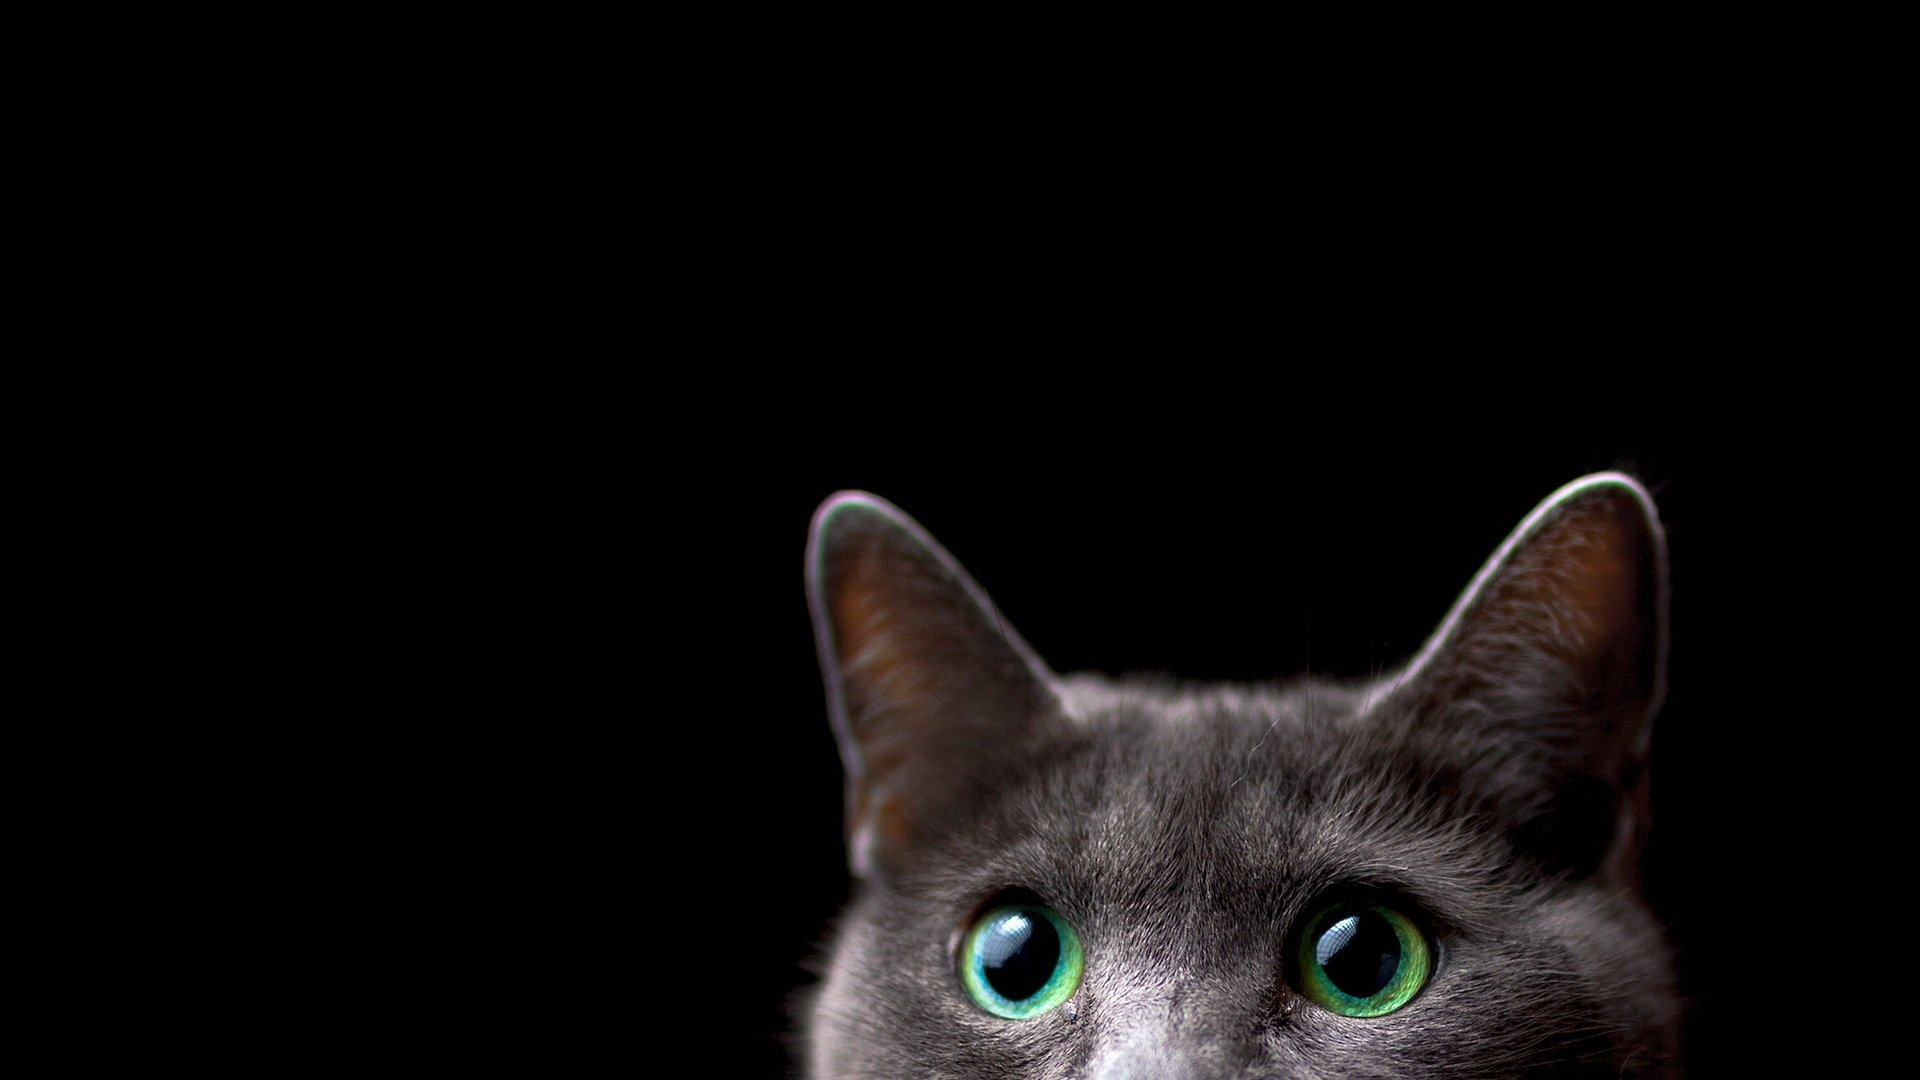 Cat cool background